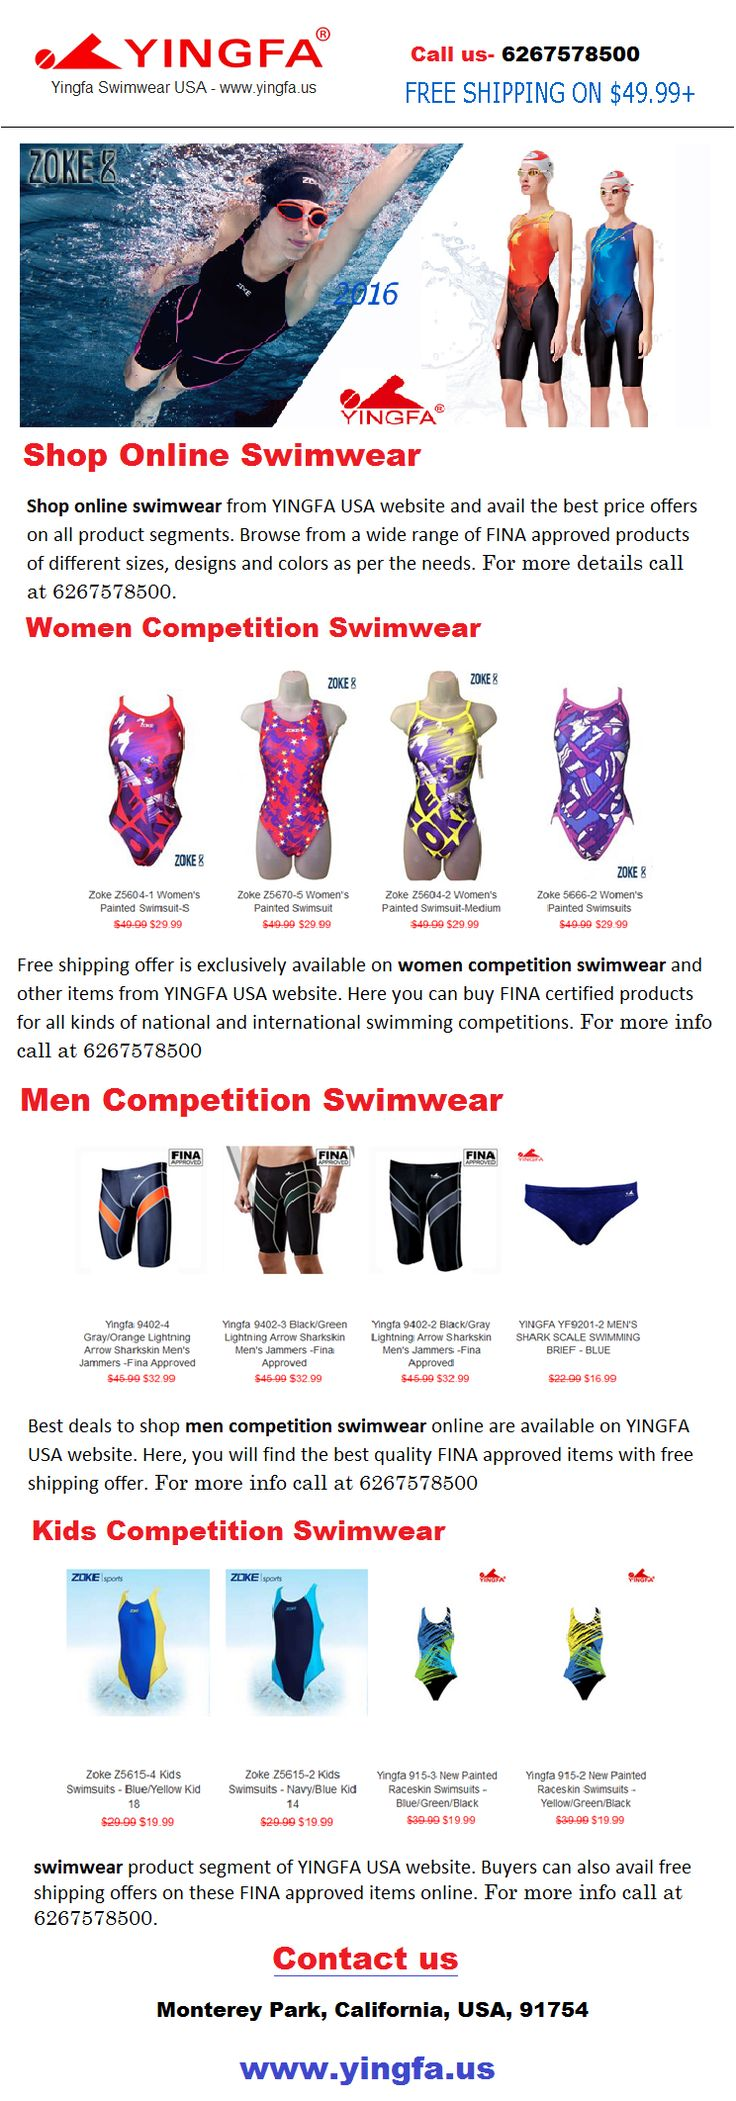 Shop online swimwear from YINGFA USA website and avail the best price offers on all product segments. Browse from a wide range of FINA approved products of different sizes, designs and colors as per the needs. For more details call at 6267578500.